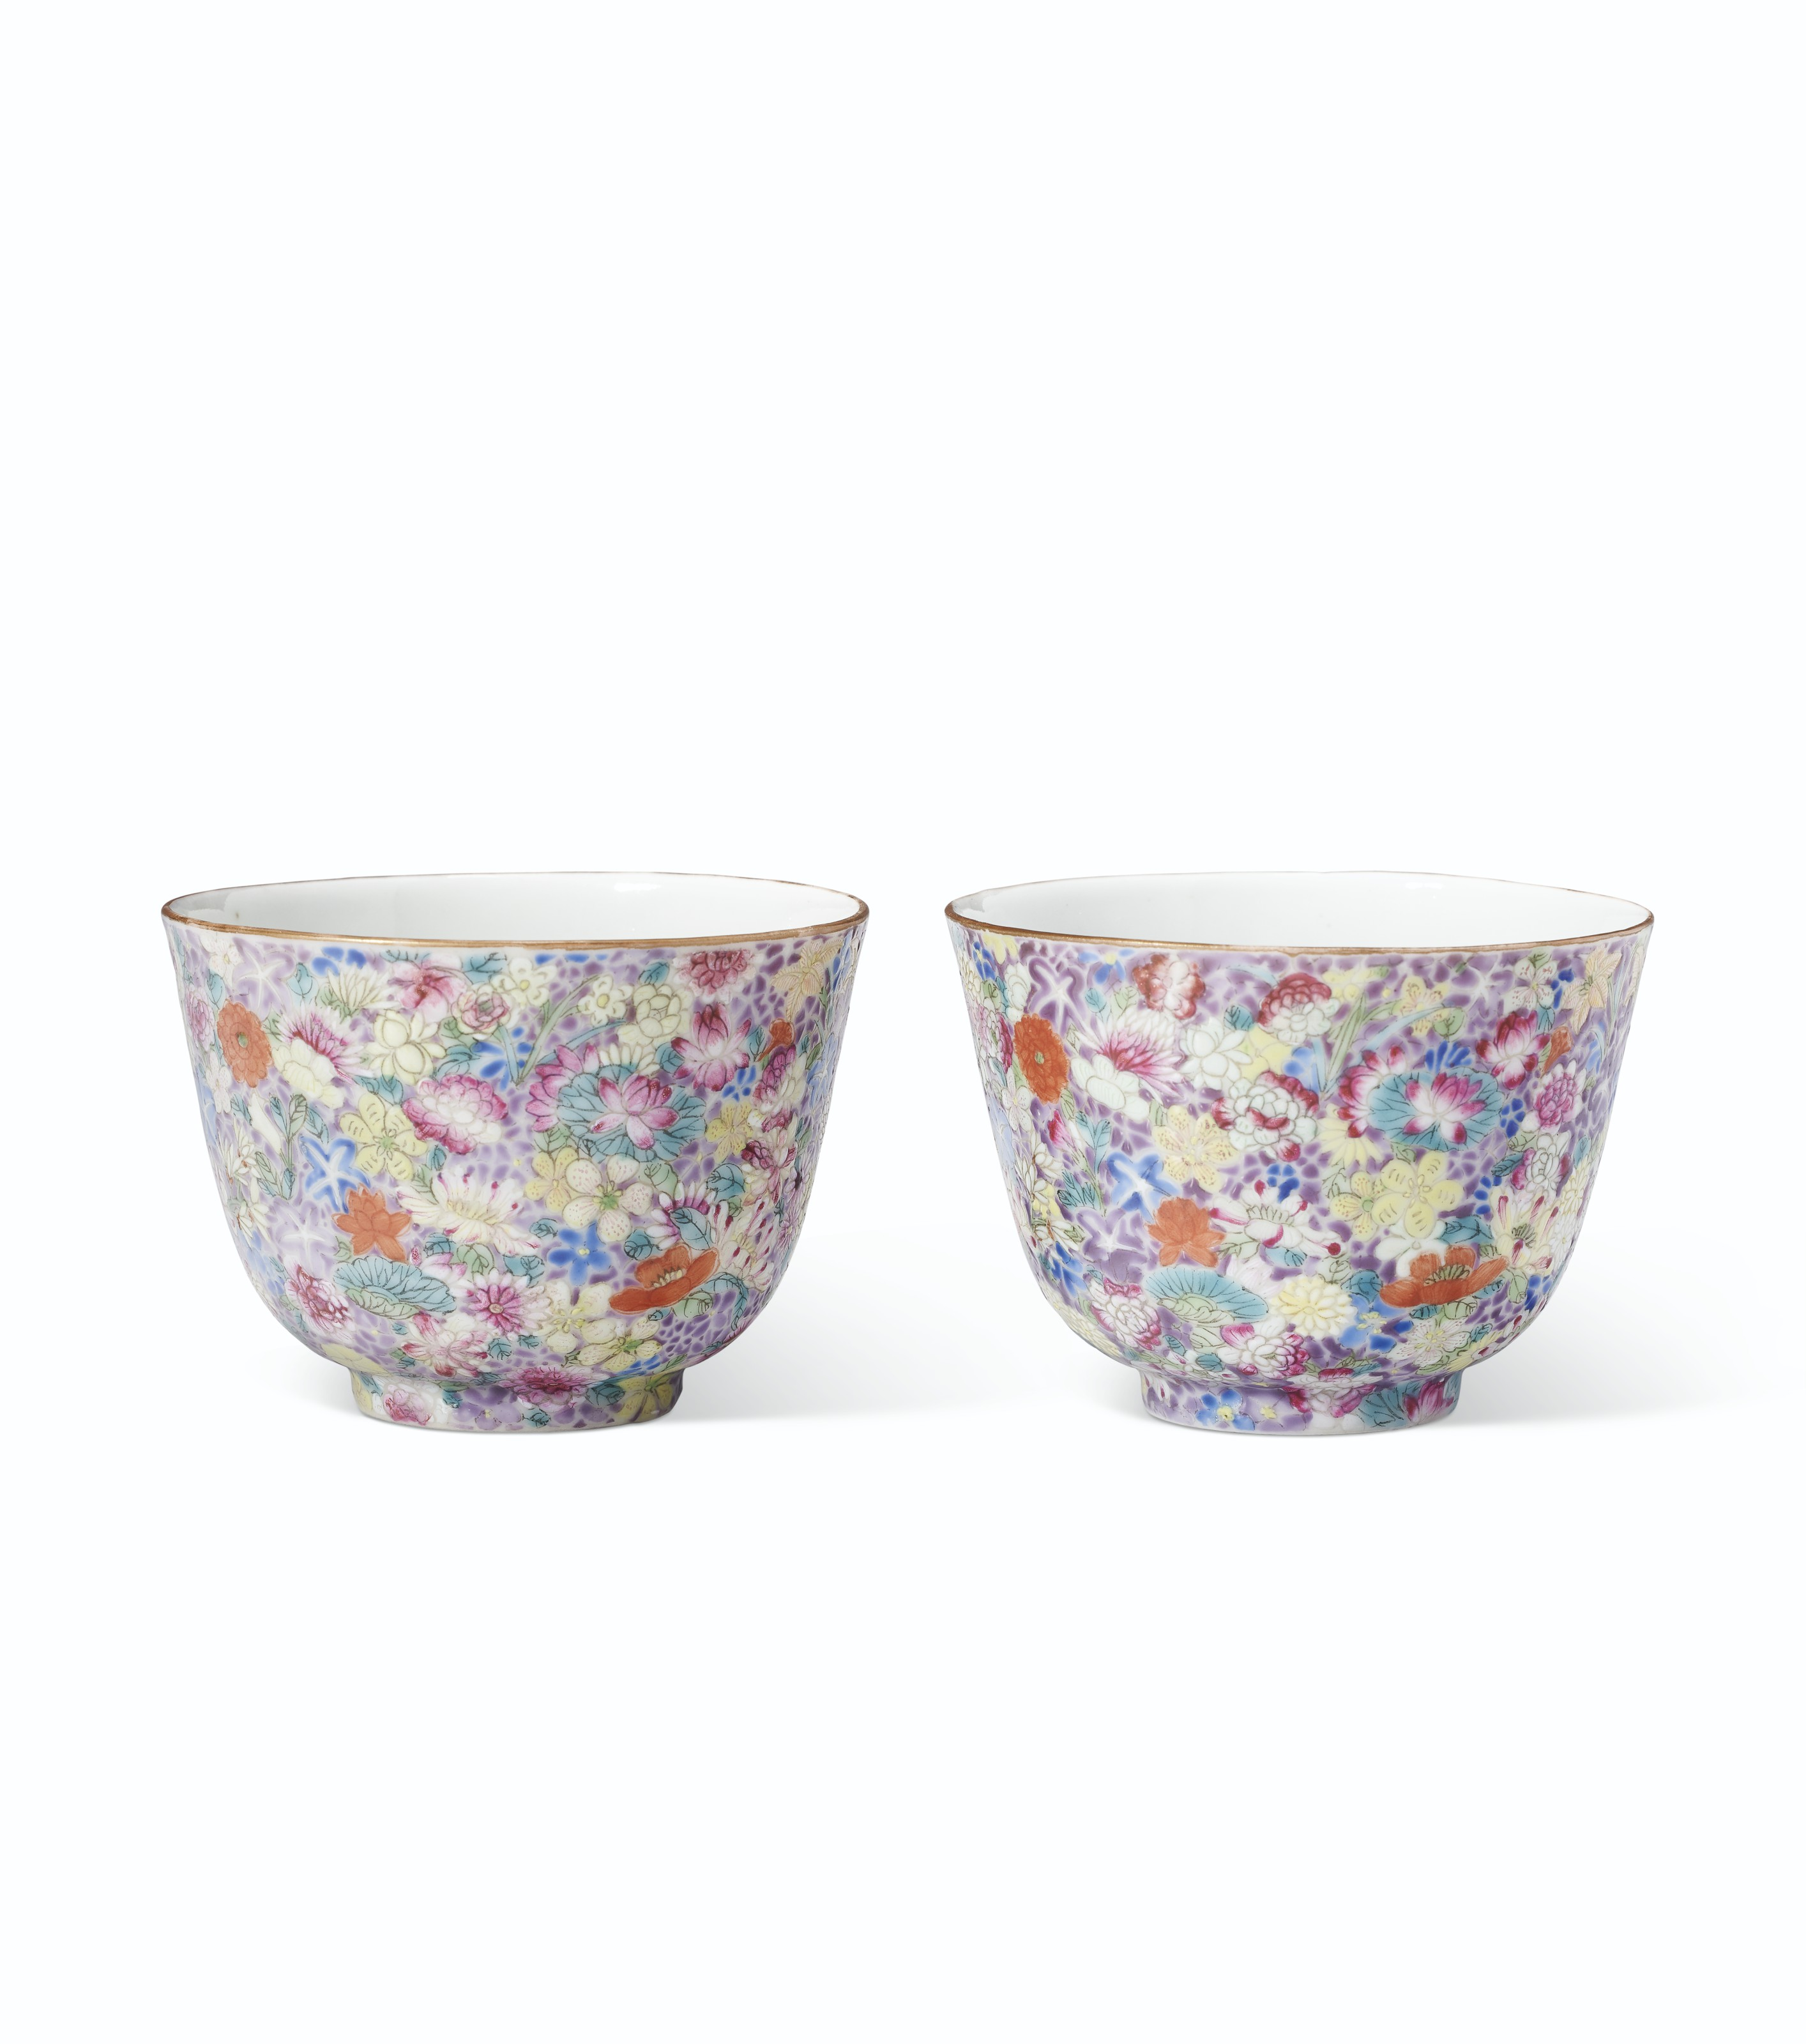 A PAIR OF FAMILLE ROSE MILLE FLEURS CUPS